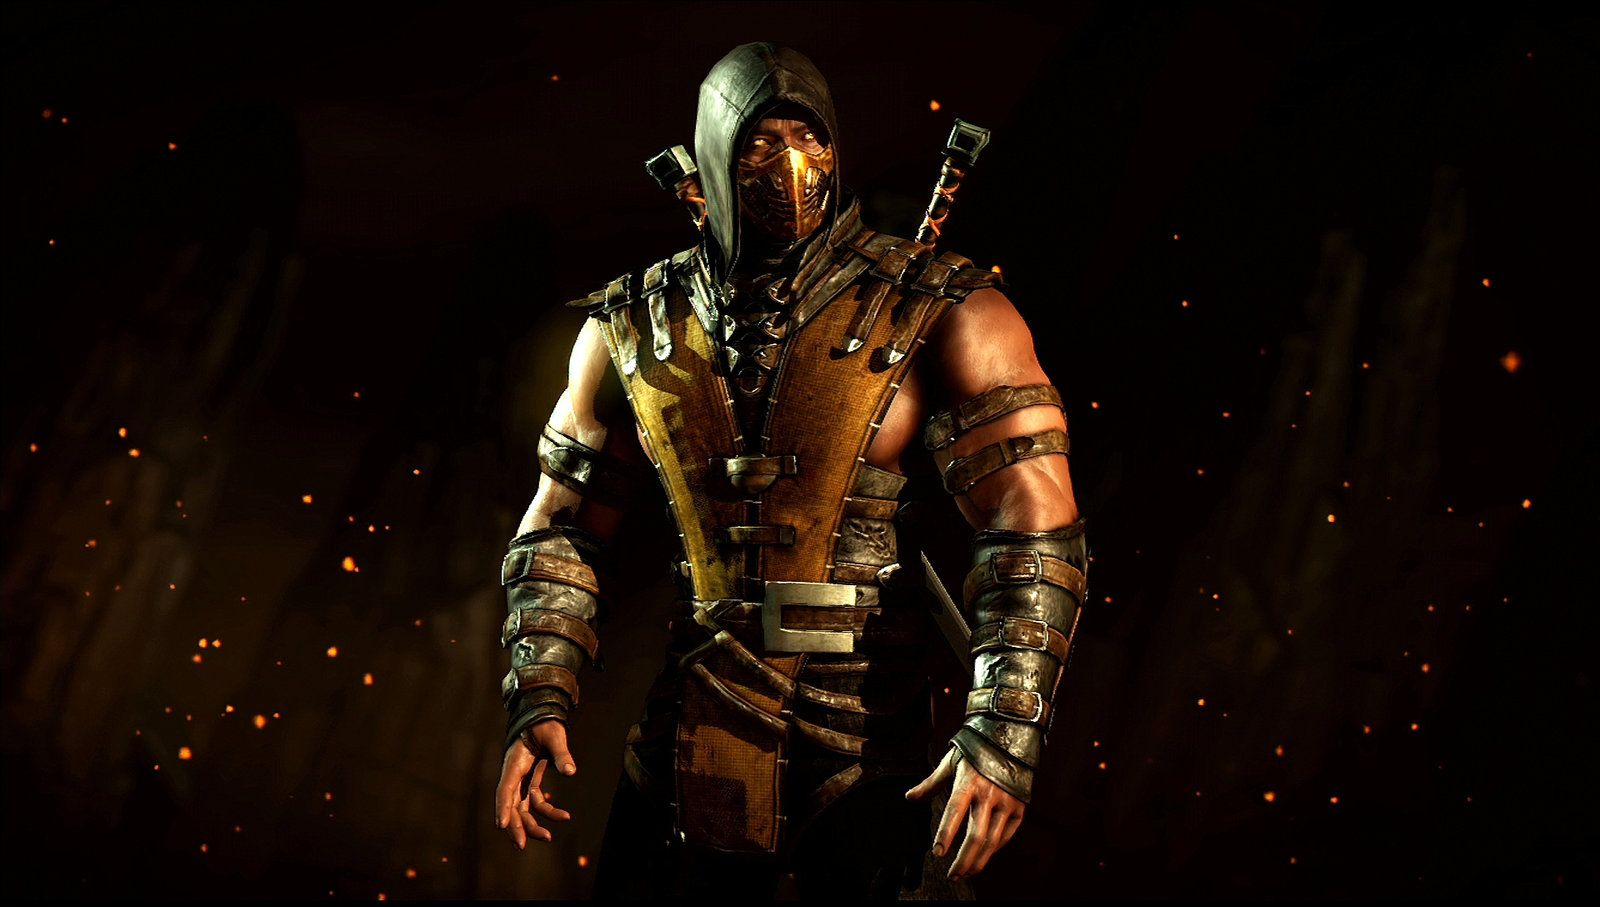 Mortal Kombat X Scorpion Wallpapers - Top Free Mortal Kombat